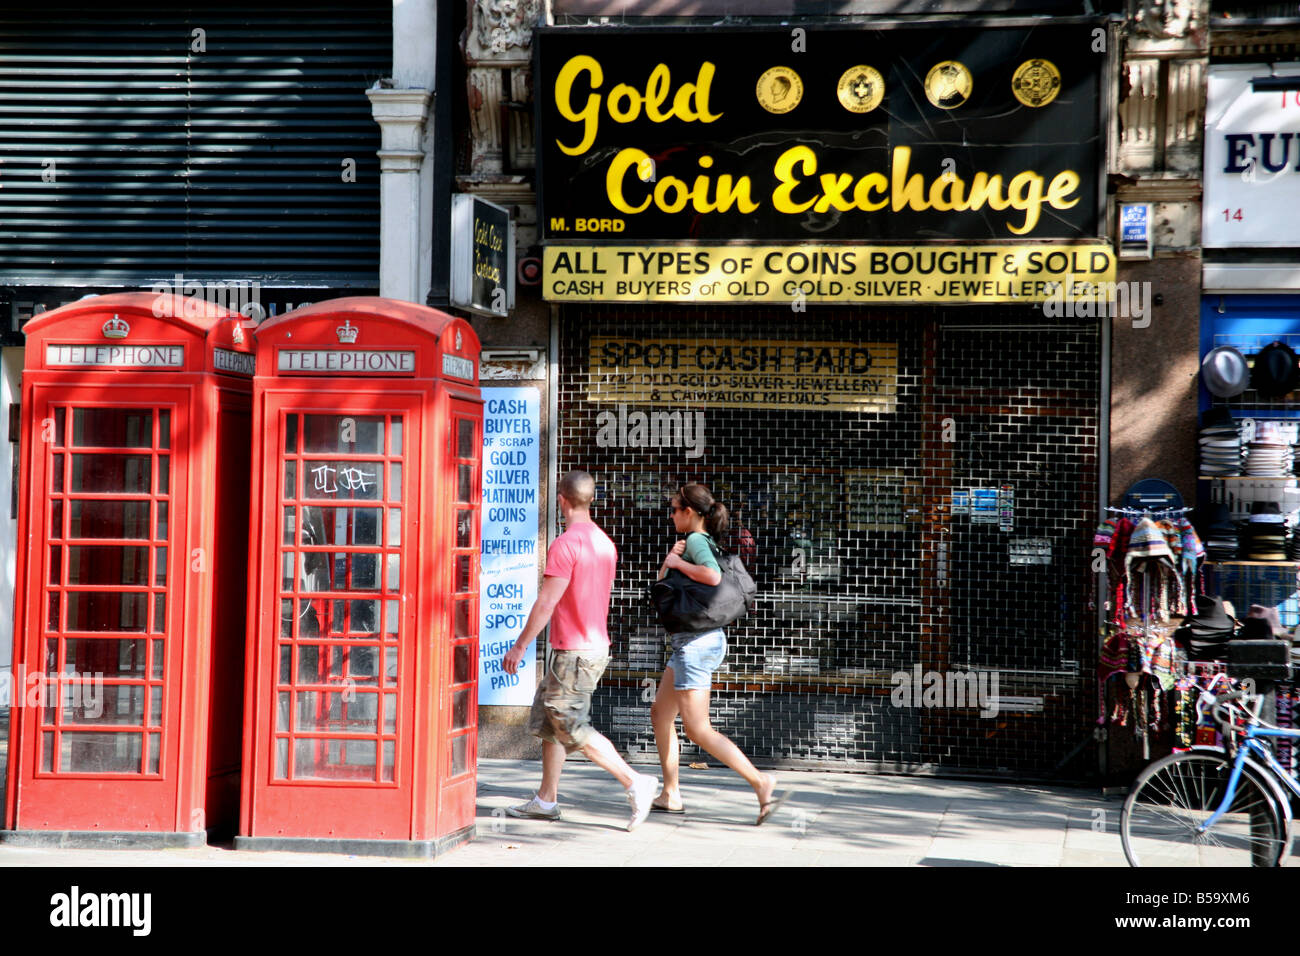 Gold coins dealer shop in Central London closed for Sunday - Stock Image